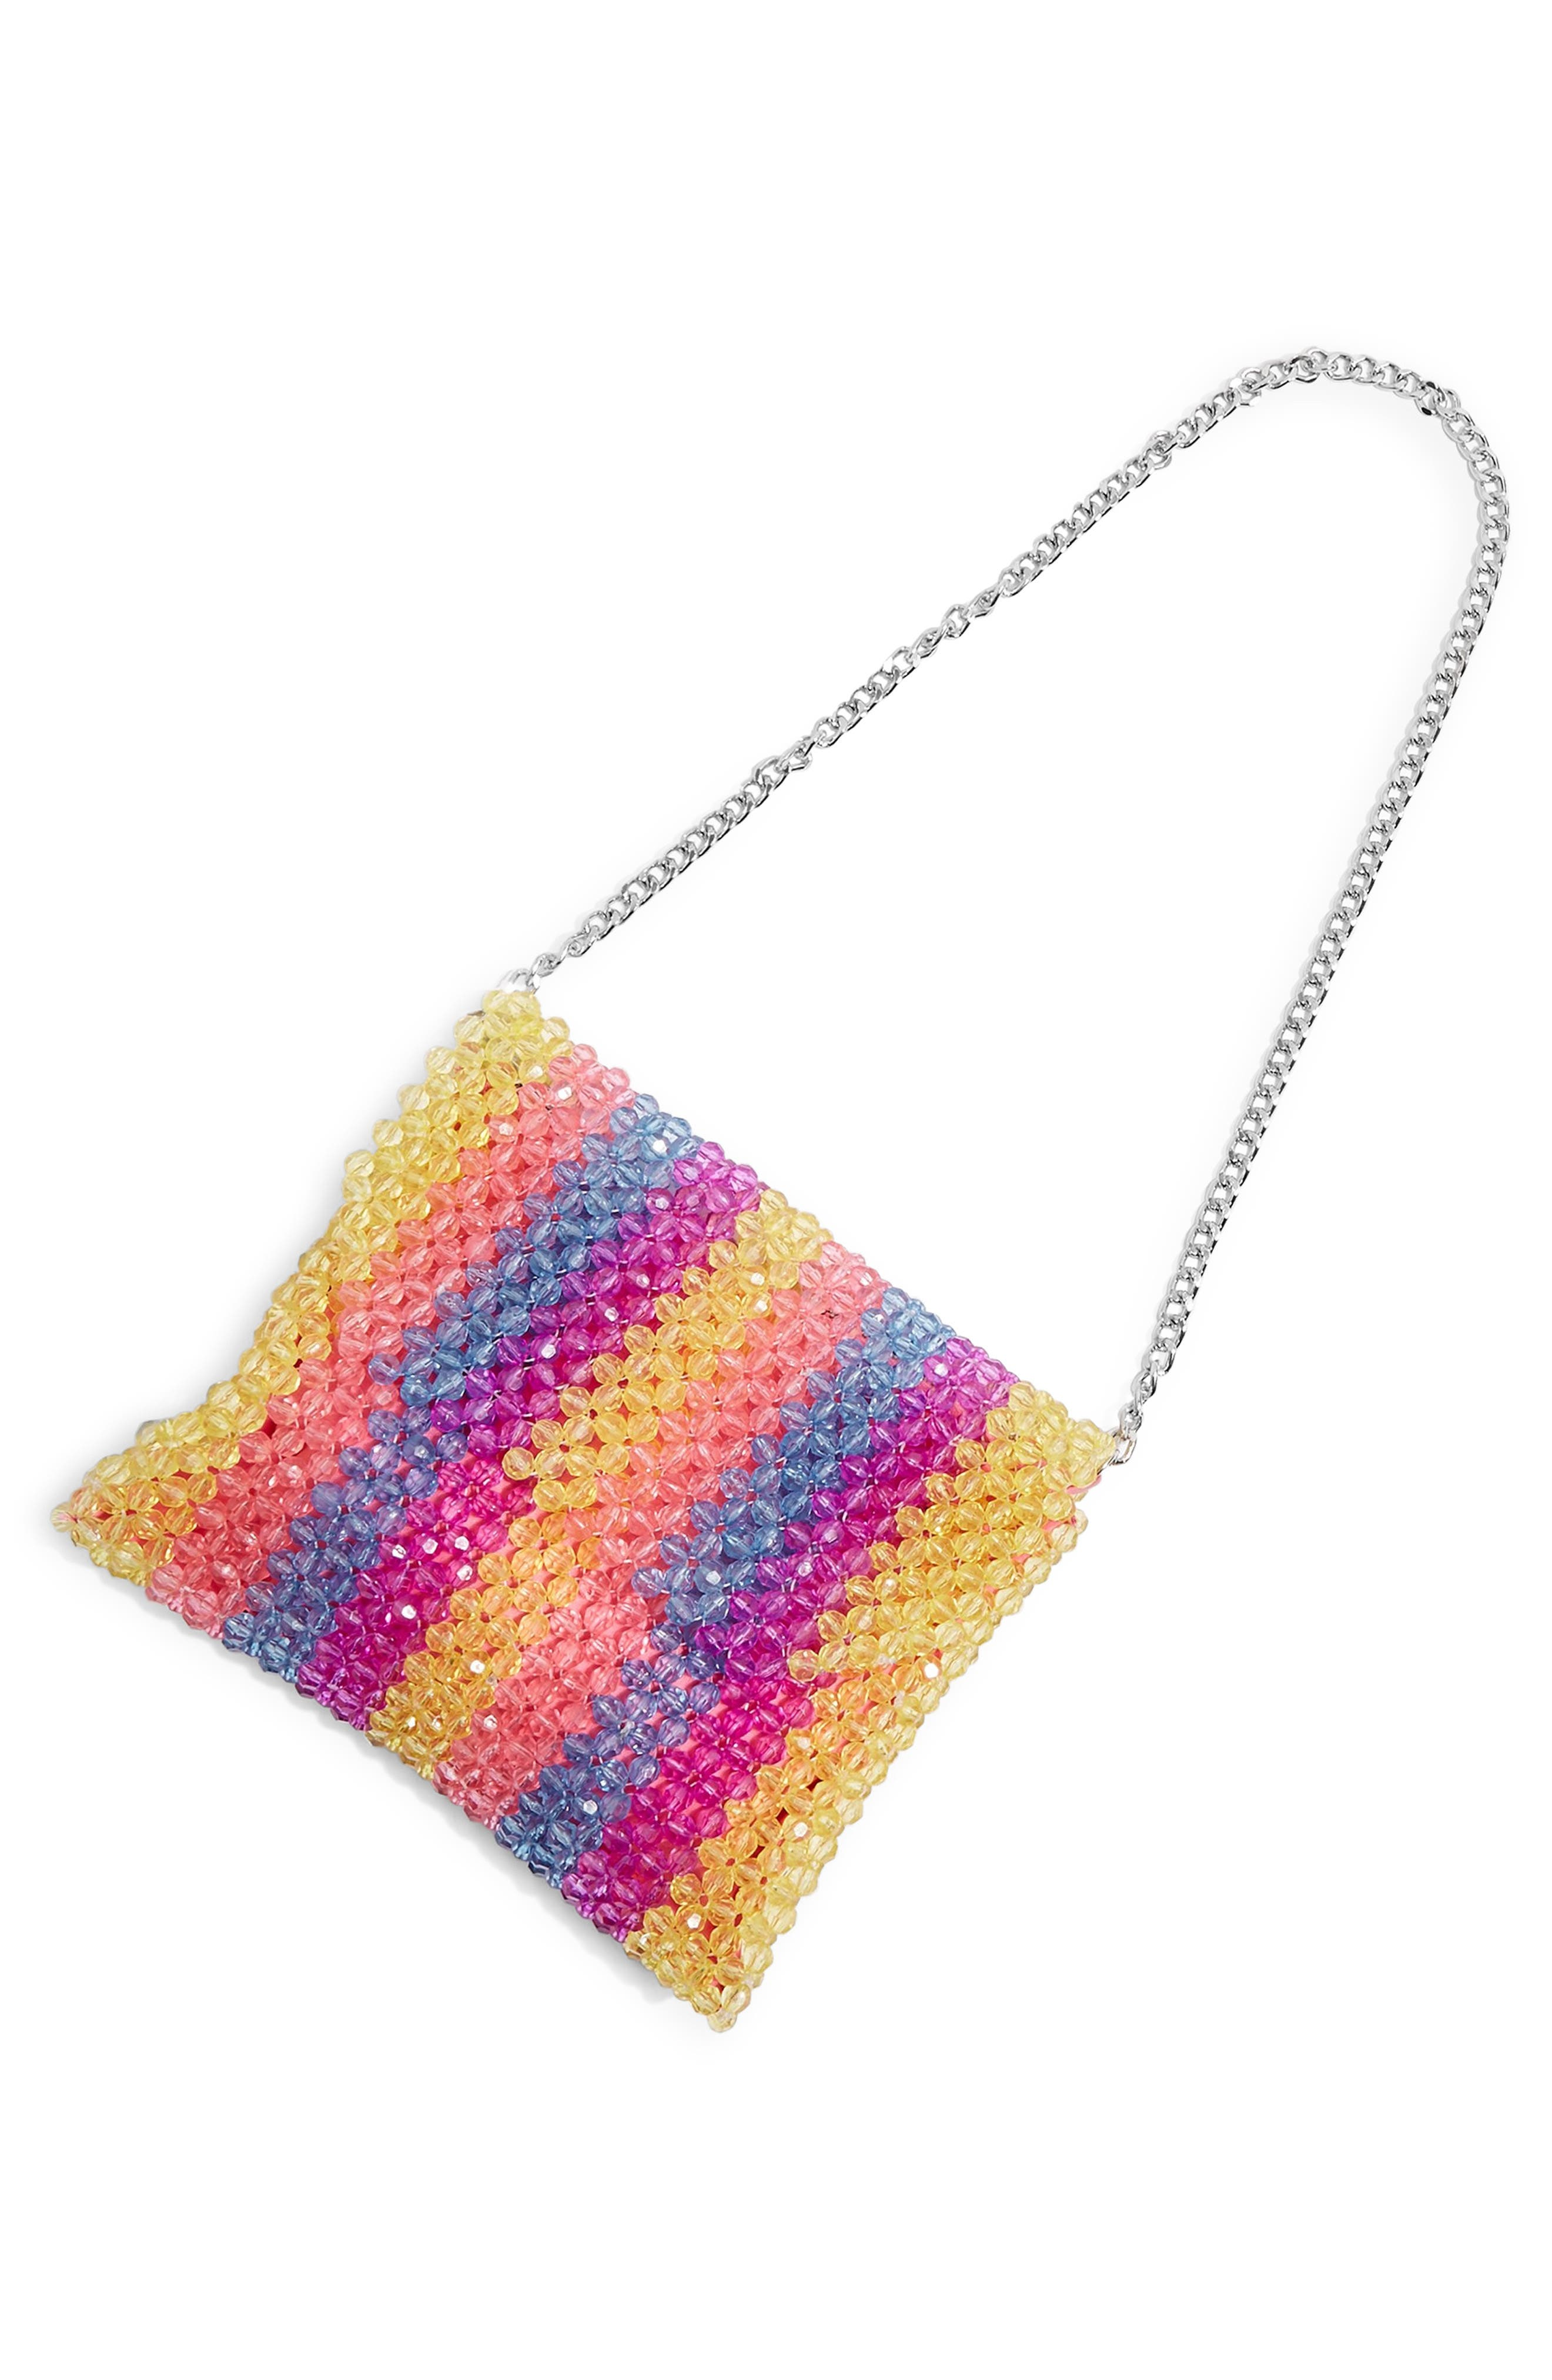 Zizi Beaded Shoulder Bag,                             Alternate thumbnail 5, color,                             YELLOW MULTI